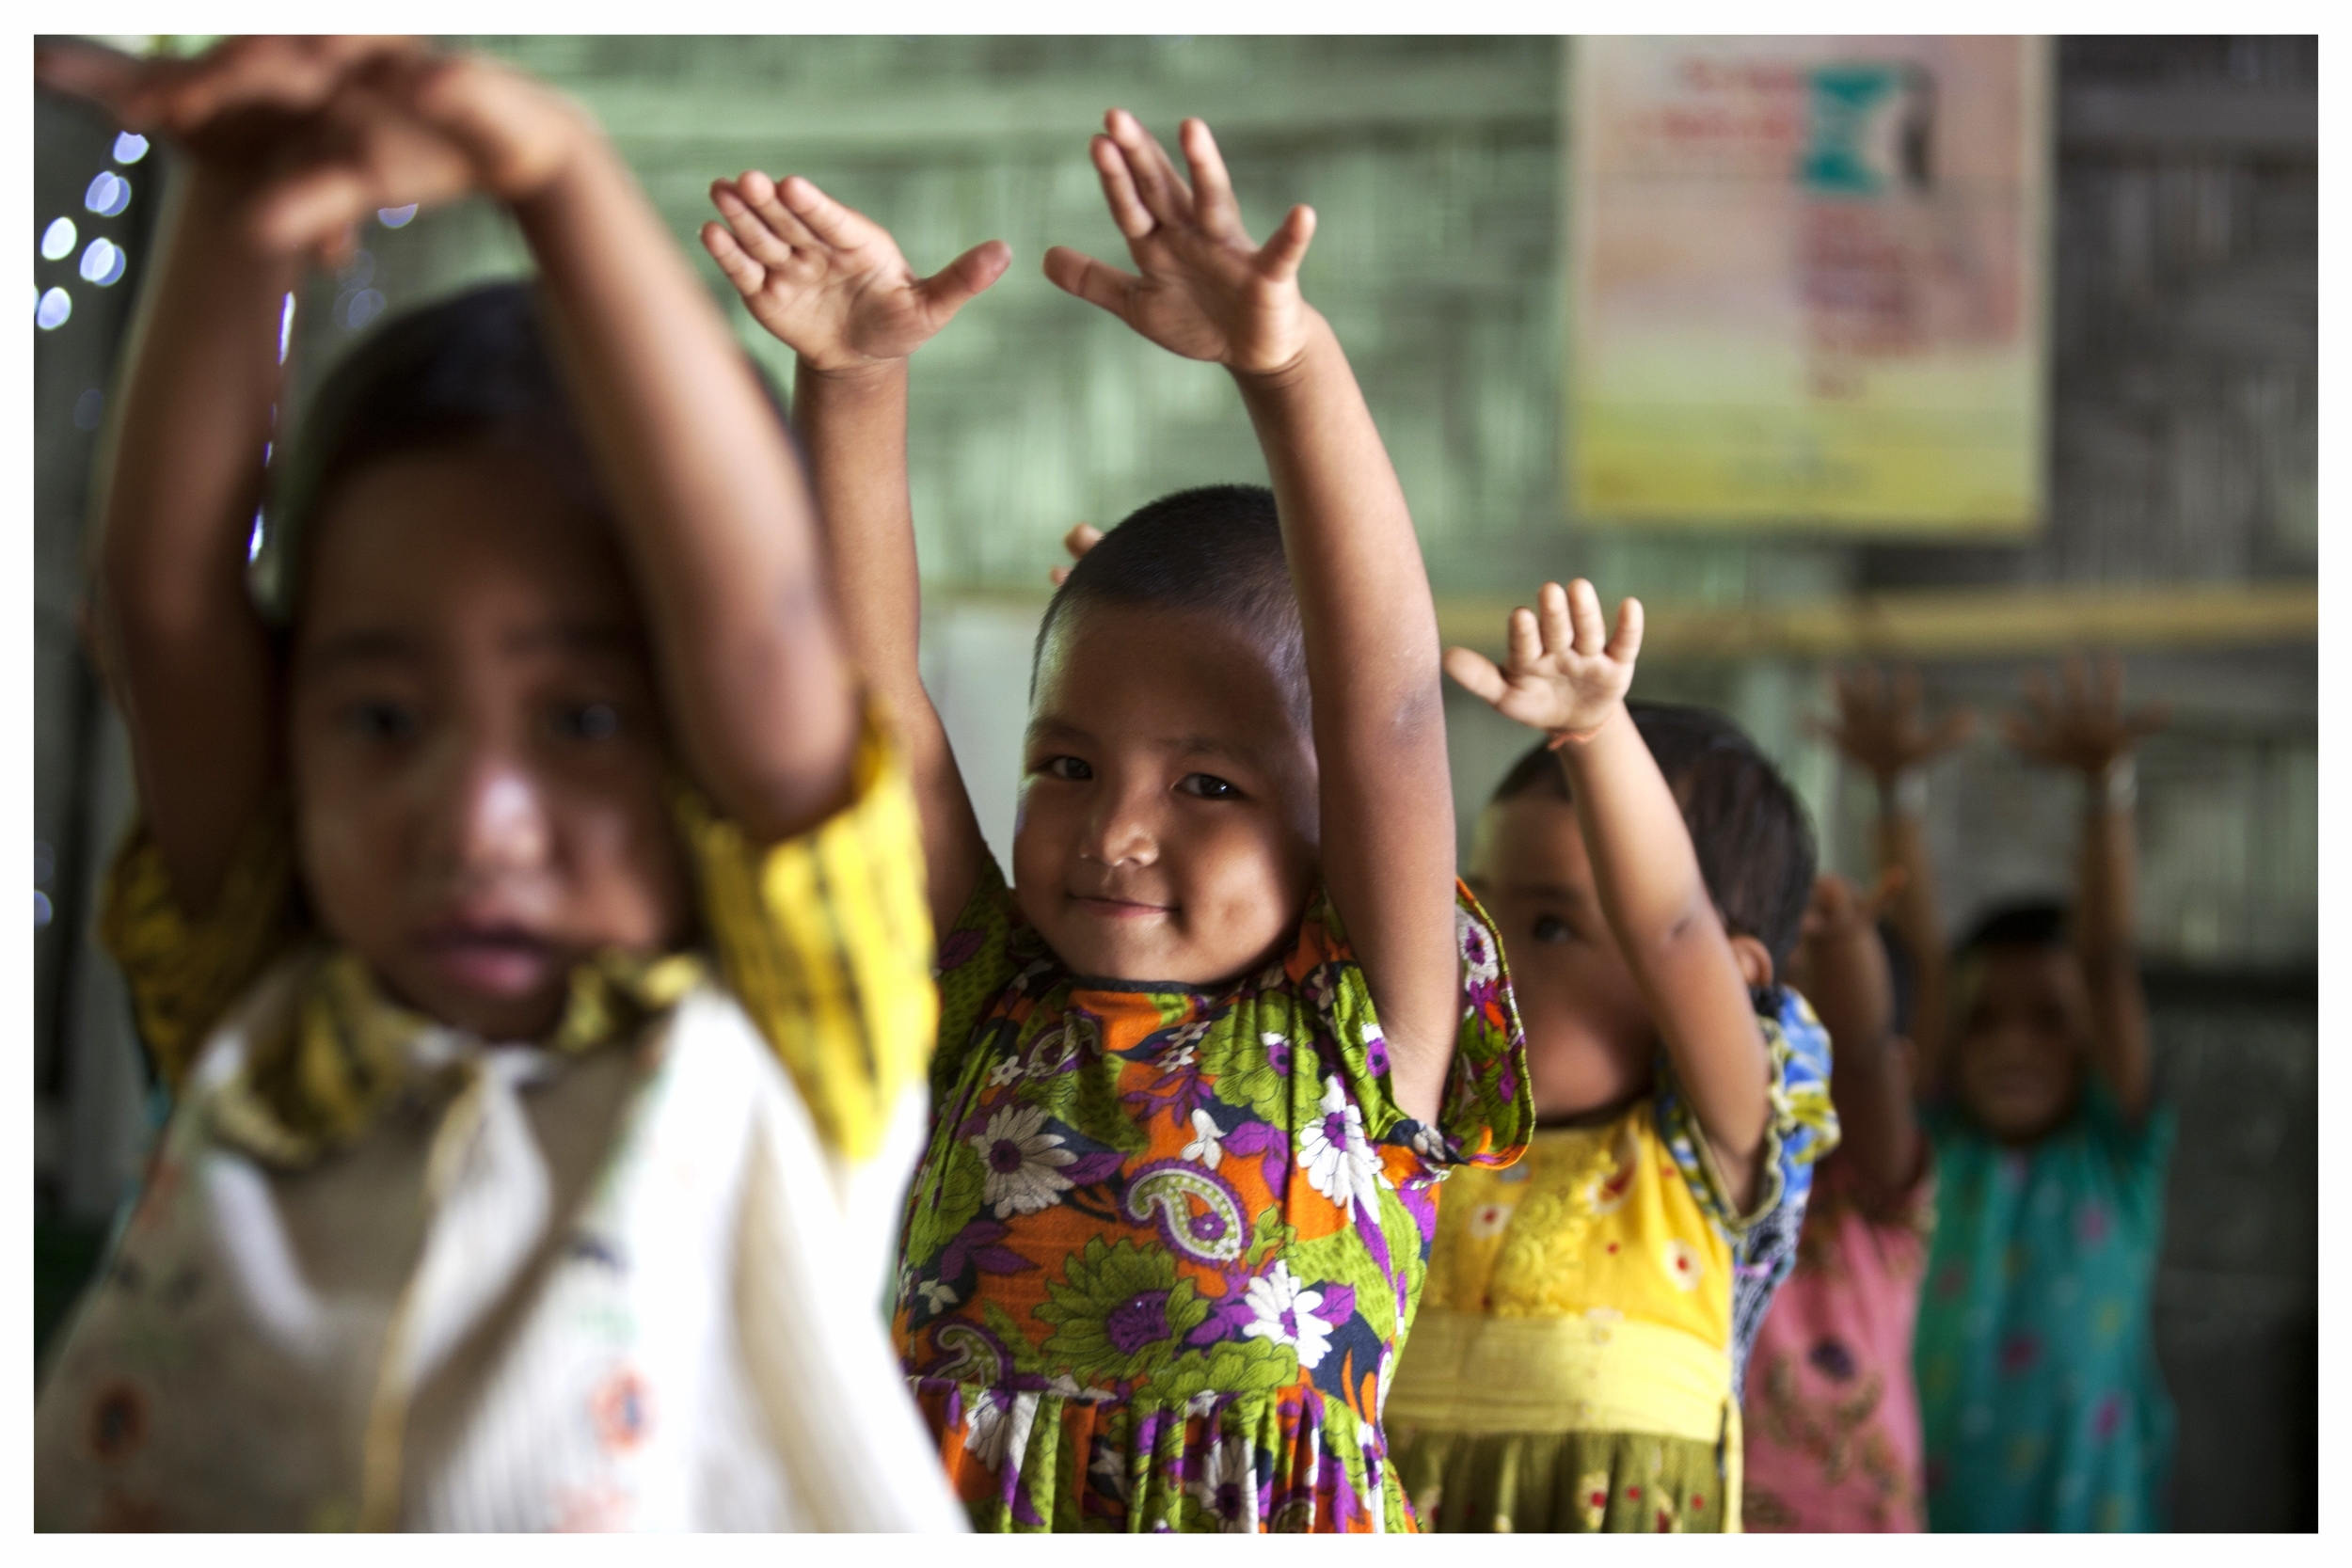 Investing in young children is one of the smartest investments a country can make to break the cycle of poverty and promote inclusive and strong economies.